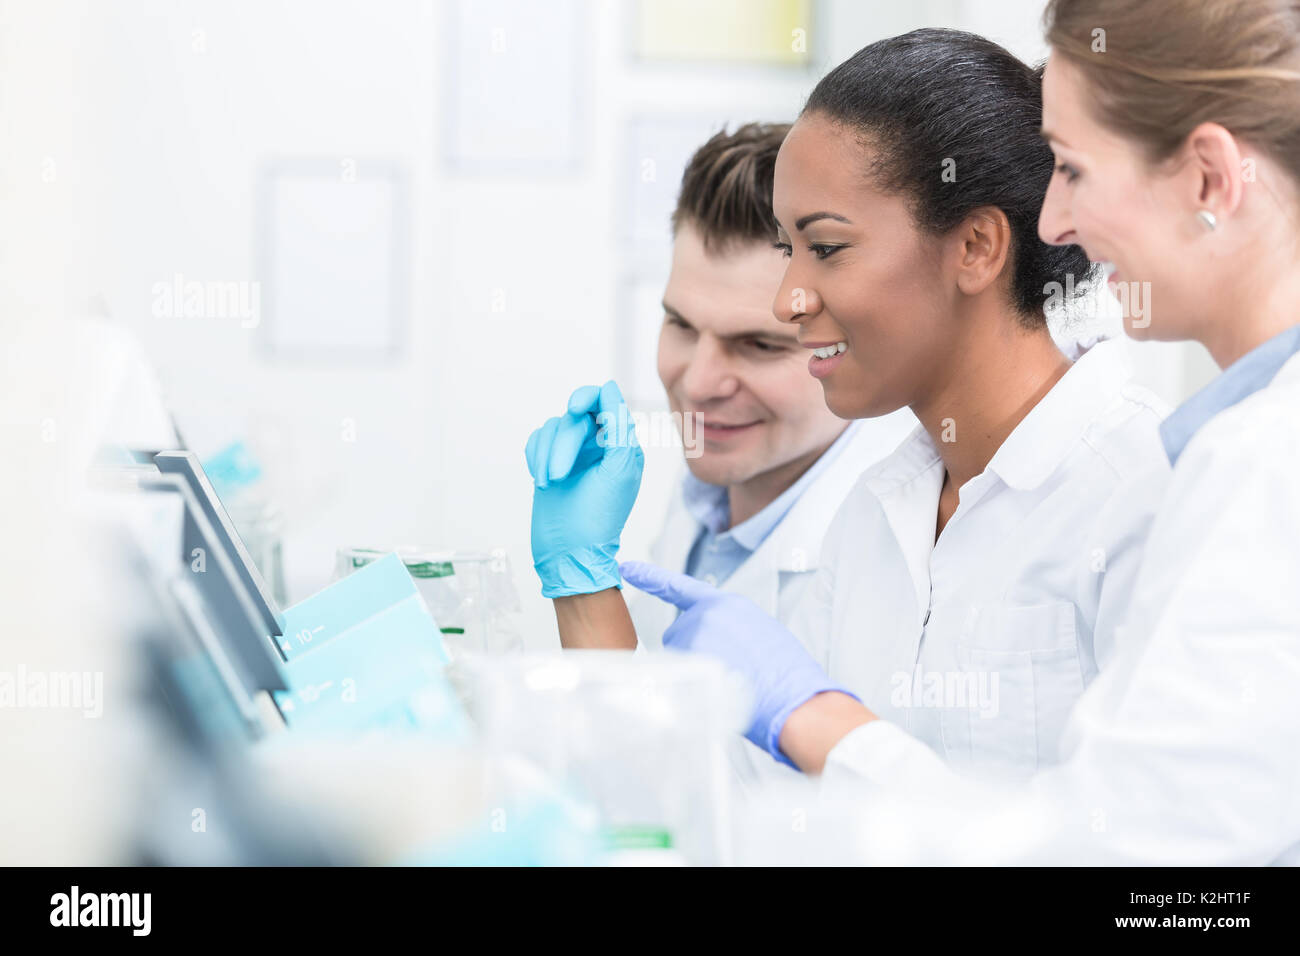 Group of researchers during work on devices in laboratory - Stock Image